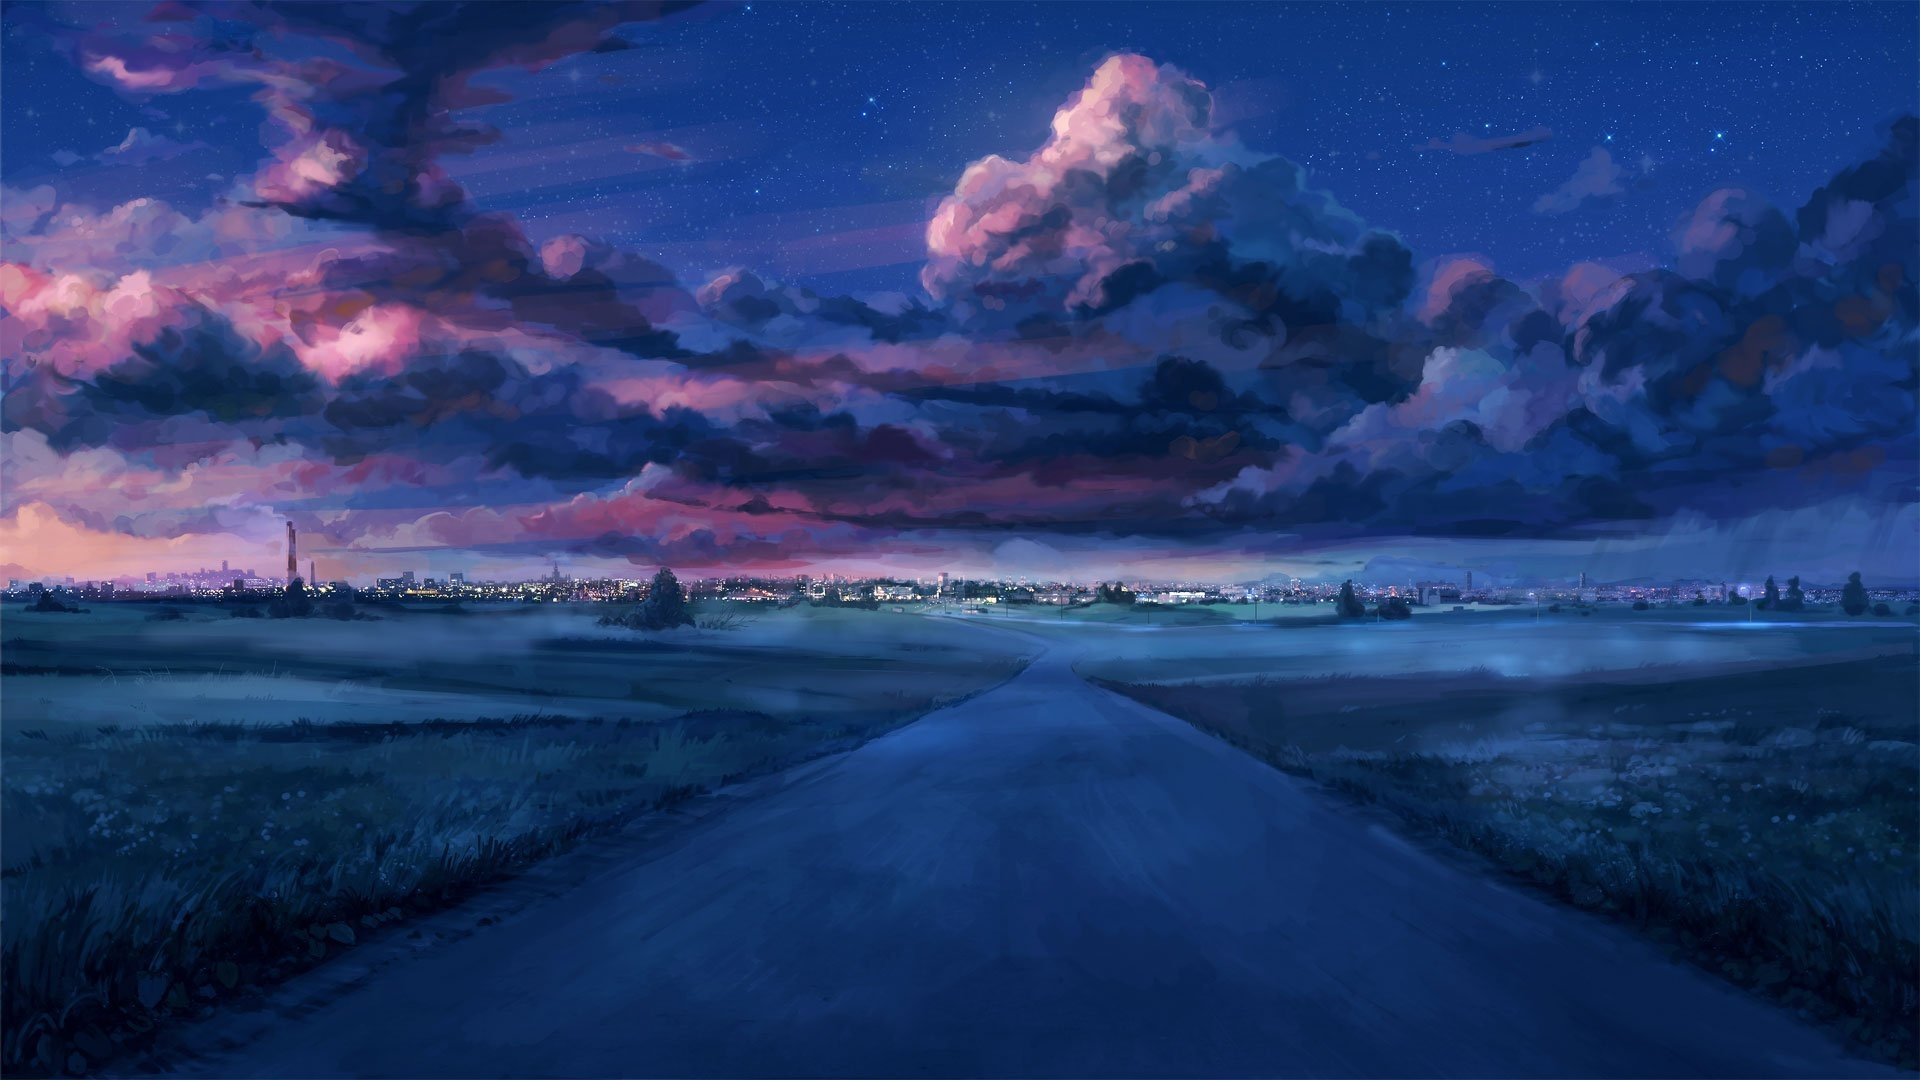 Anime Landscape With Clouds background wallpaper